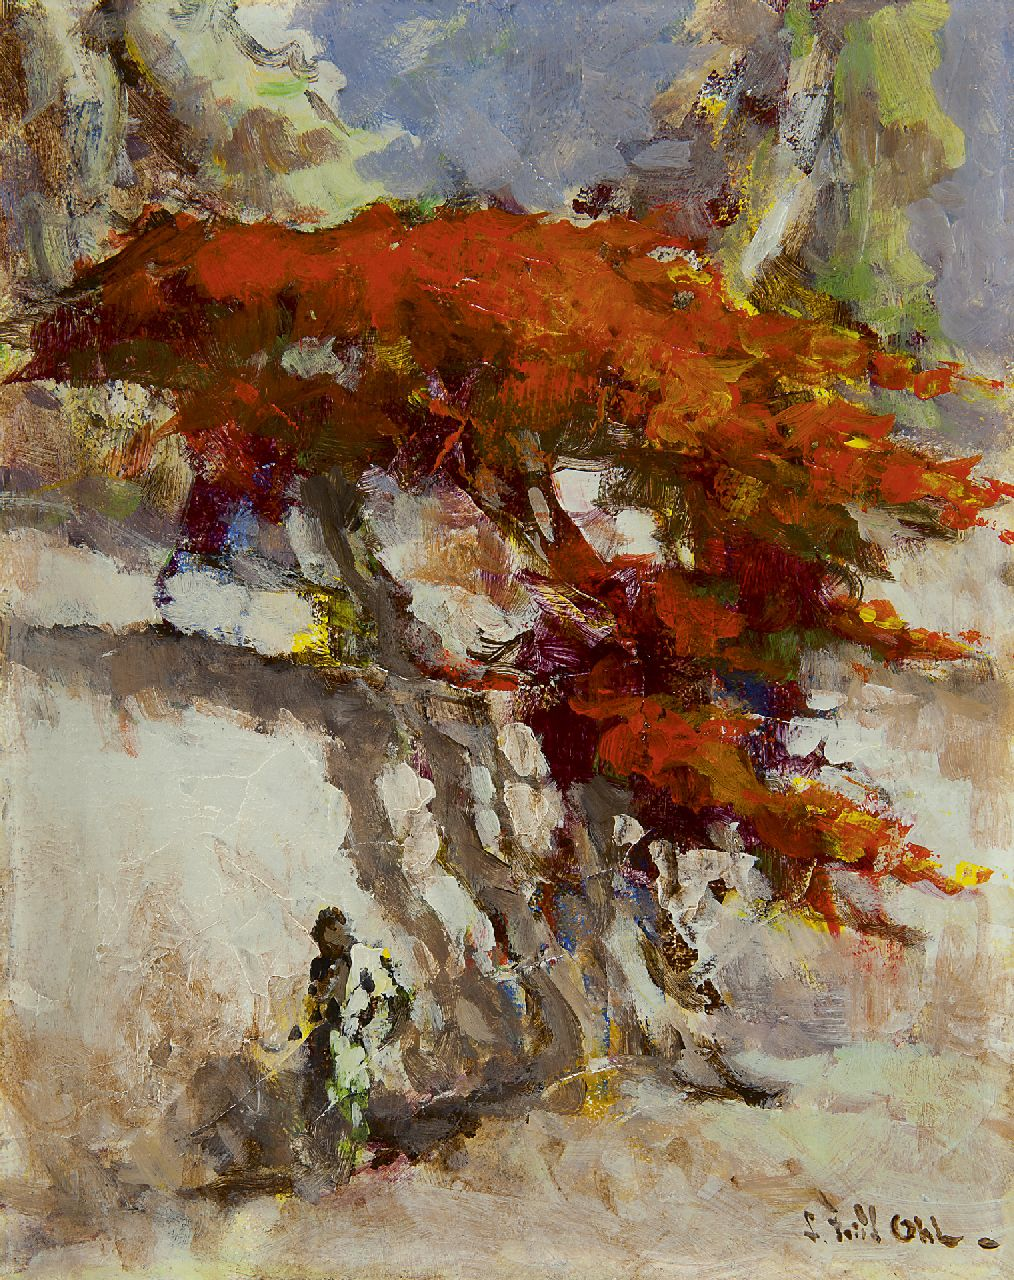 Frits Ohl | Flame tree by a white wall, oil on board, 29.9 x 24.0 cm, signed l.r.